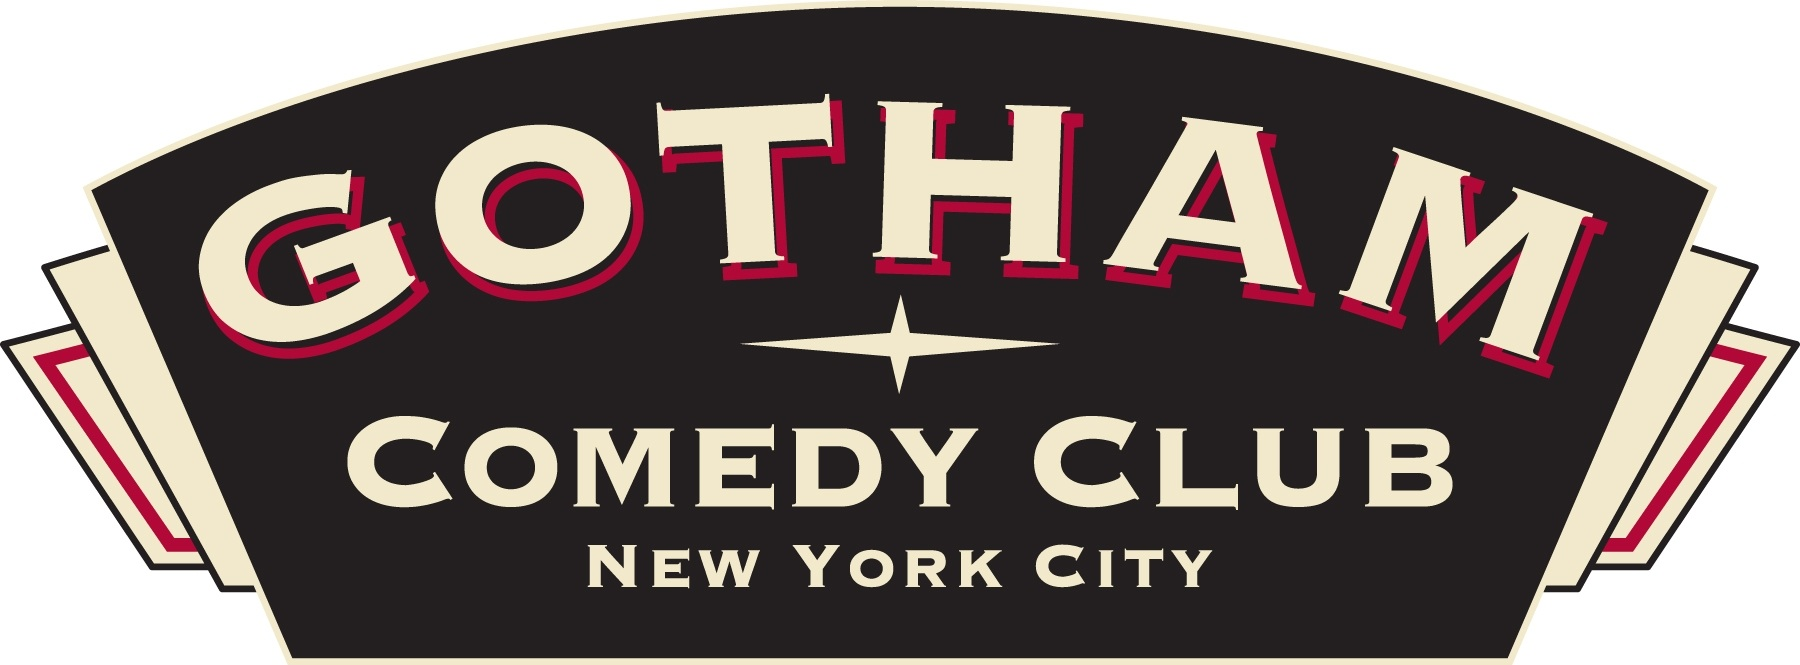 Gotham Comedy Club Logo